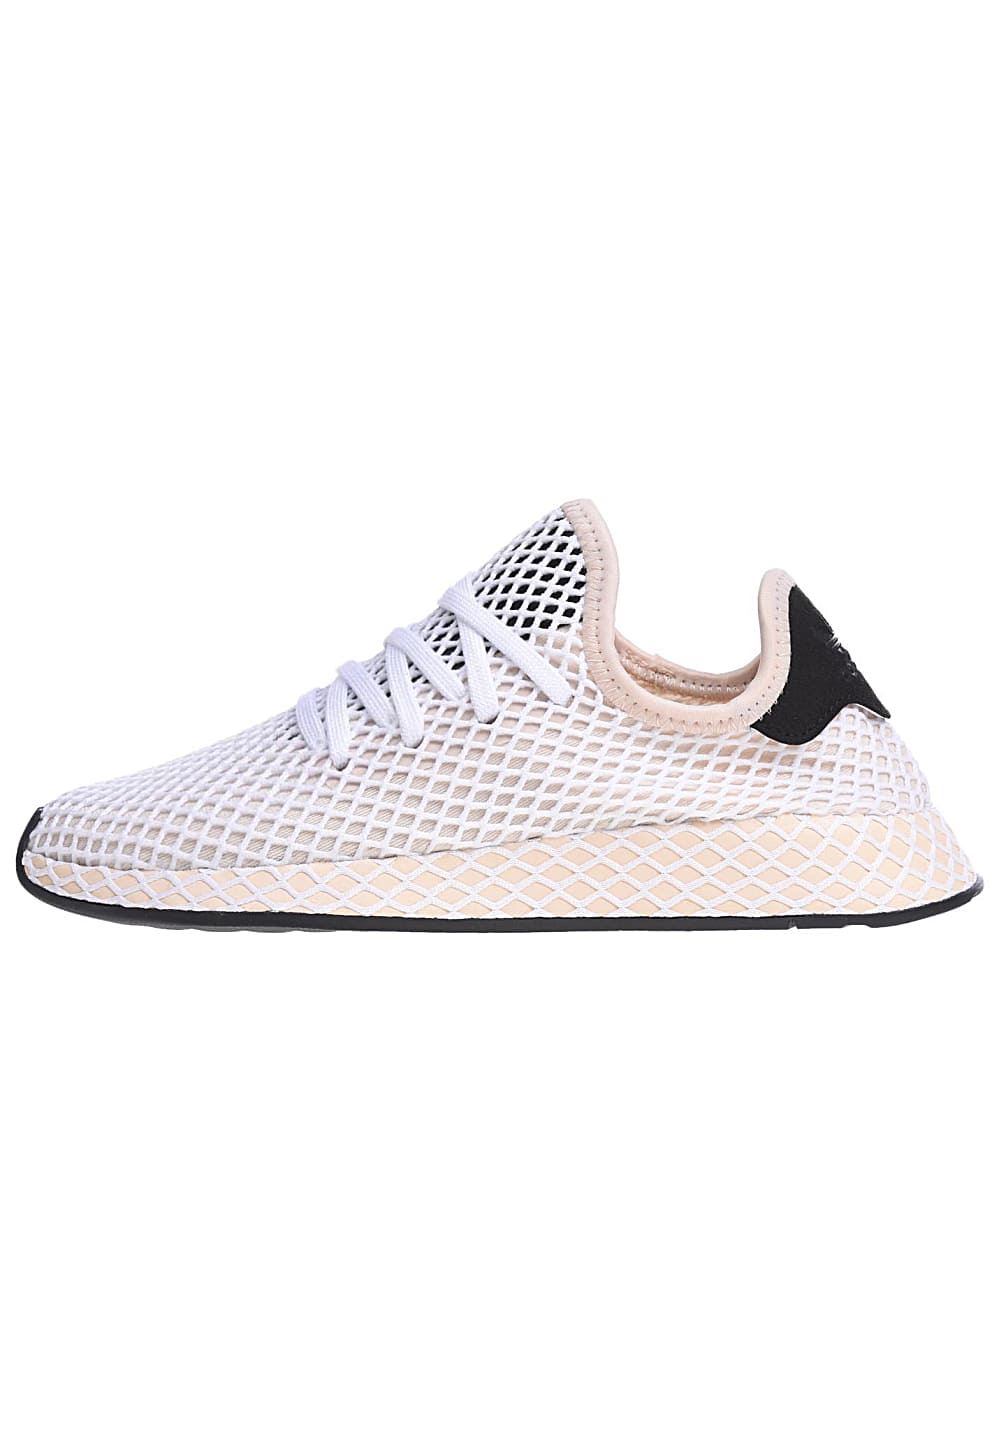 new cheap new lower prices running shoes adidas Originals Deerupt Runner - Sneaker für Damen - Weiß ...